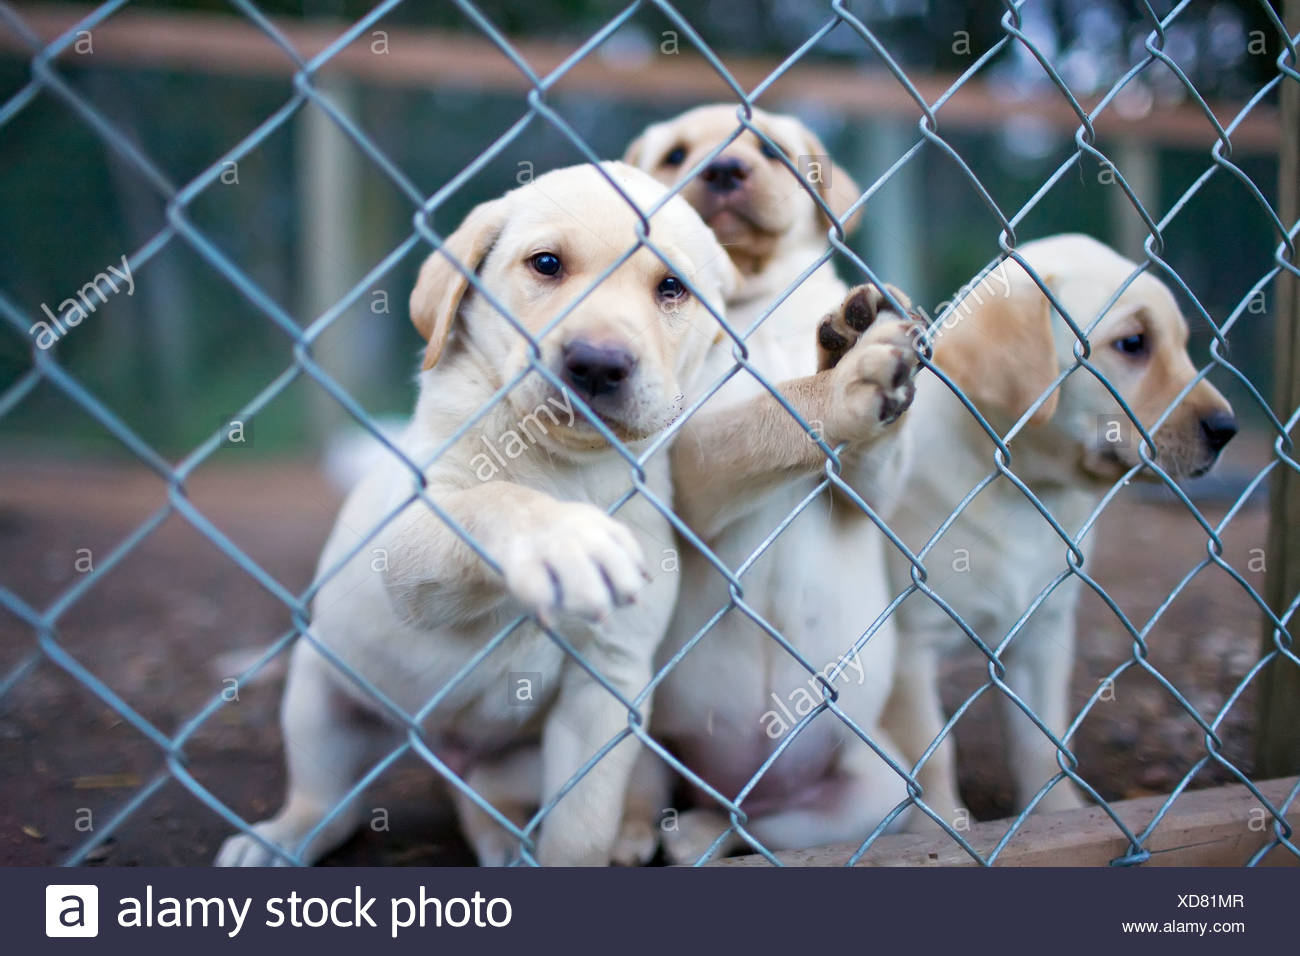 Yellow Dog Kennel Stock Photos & Yellow Dog Kennel Stock Images - Alamy